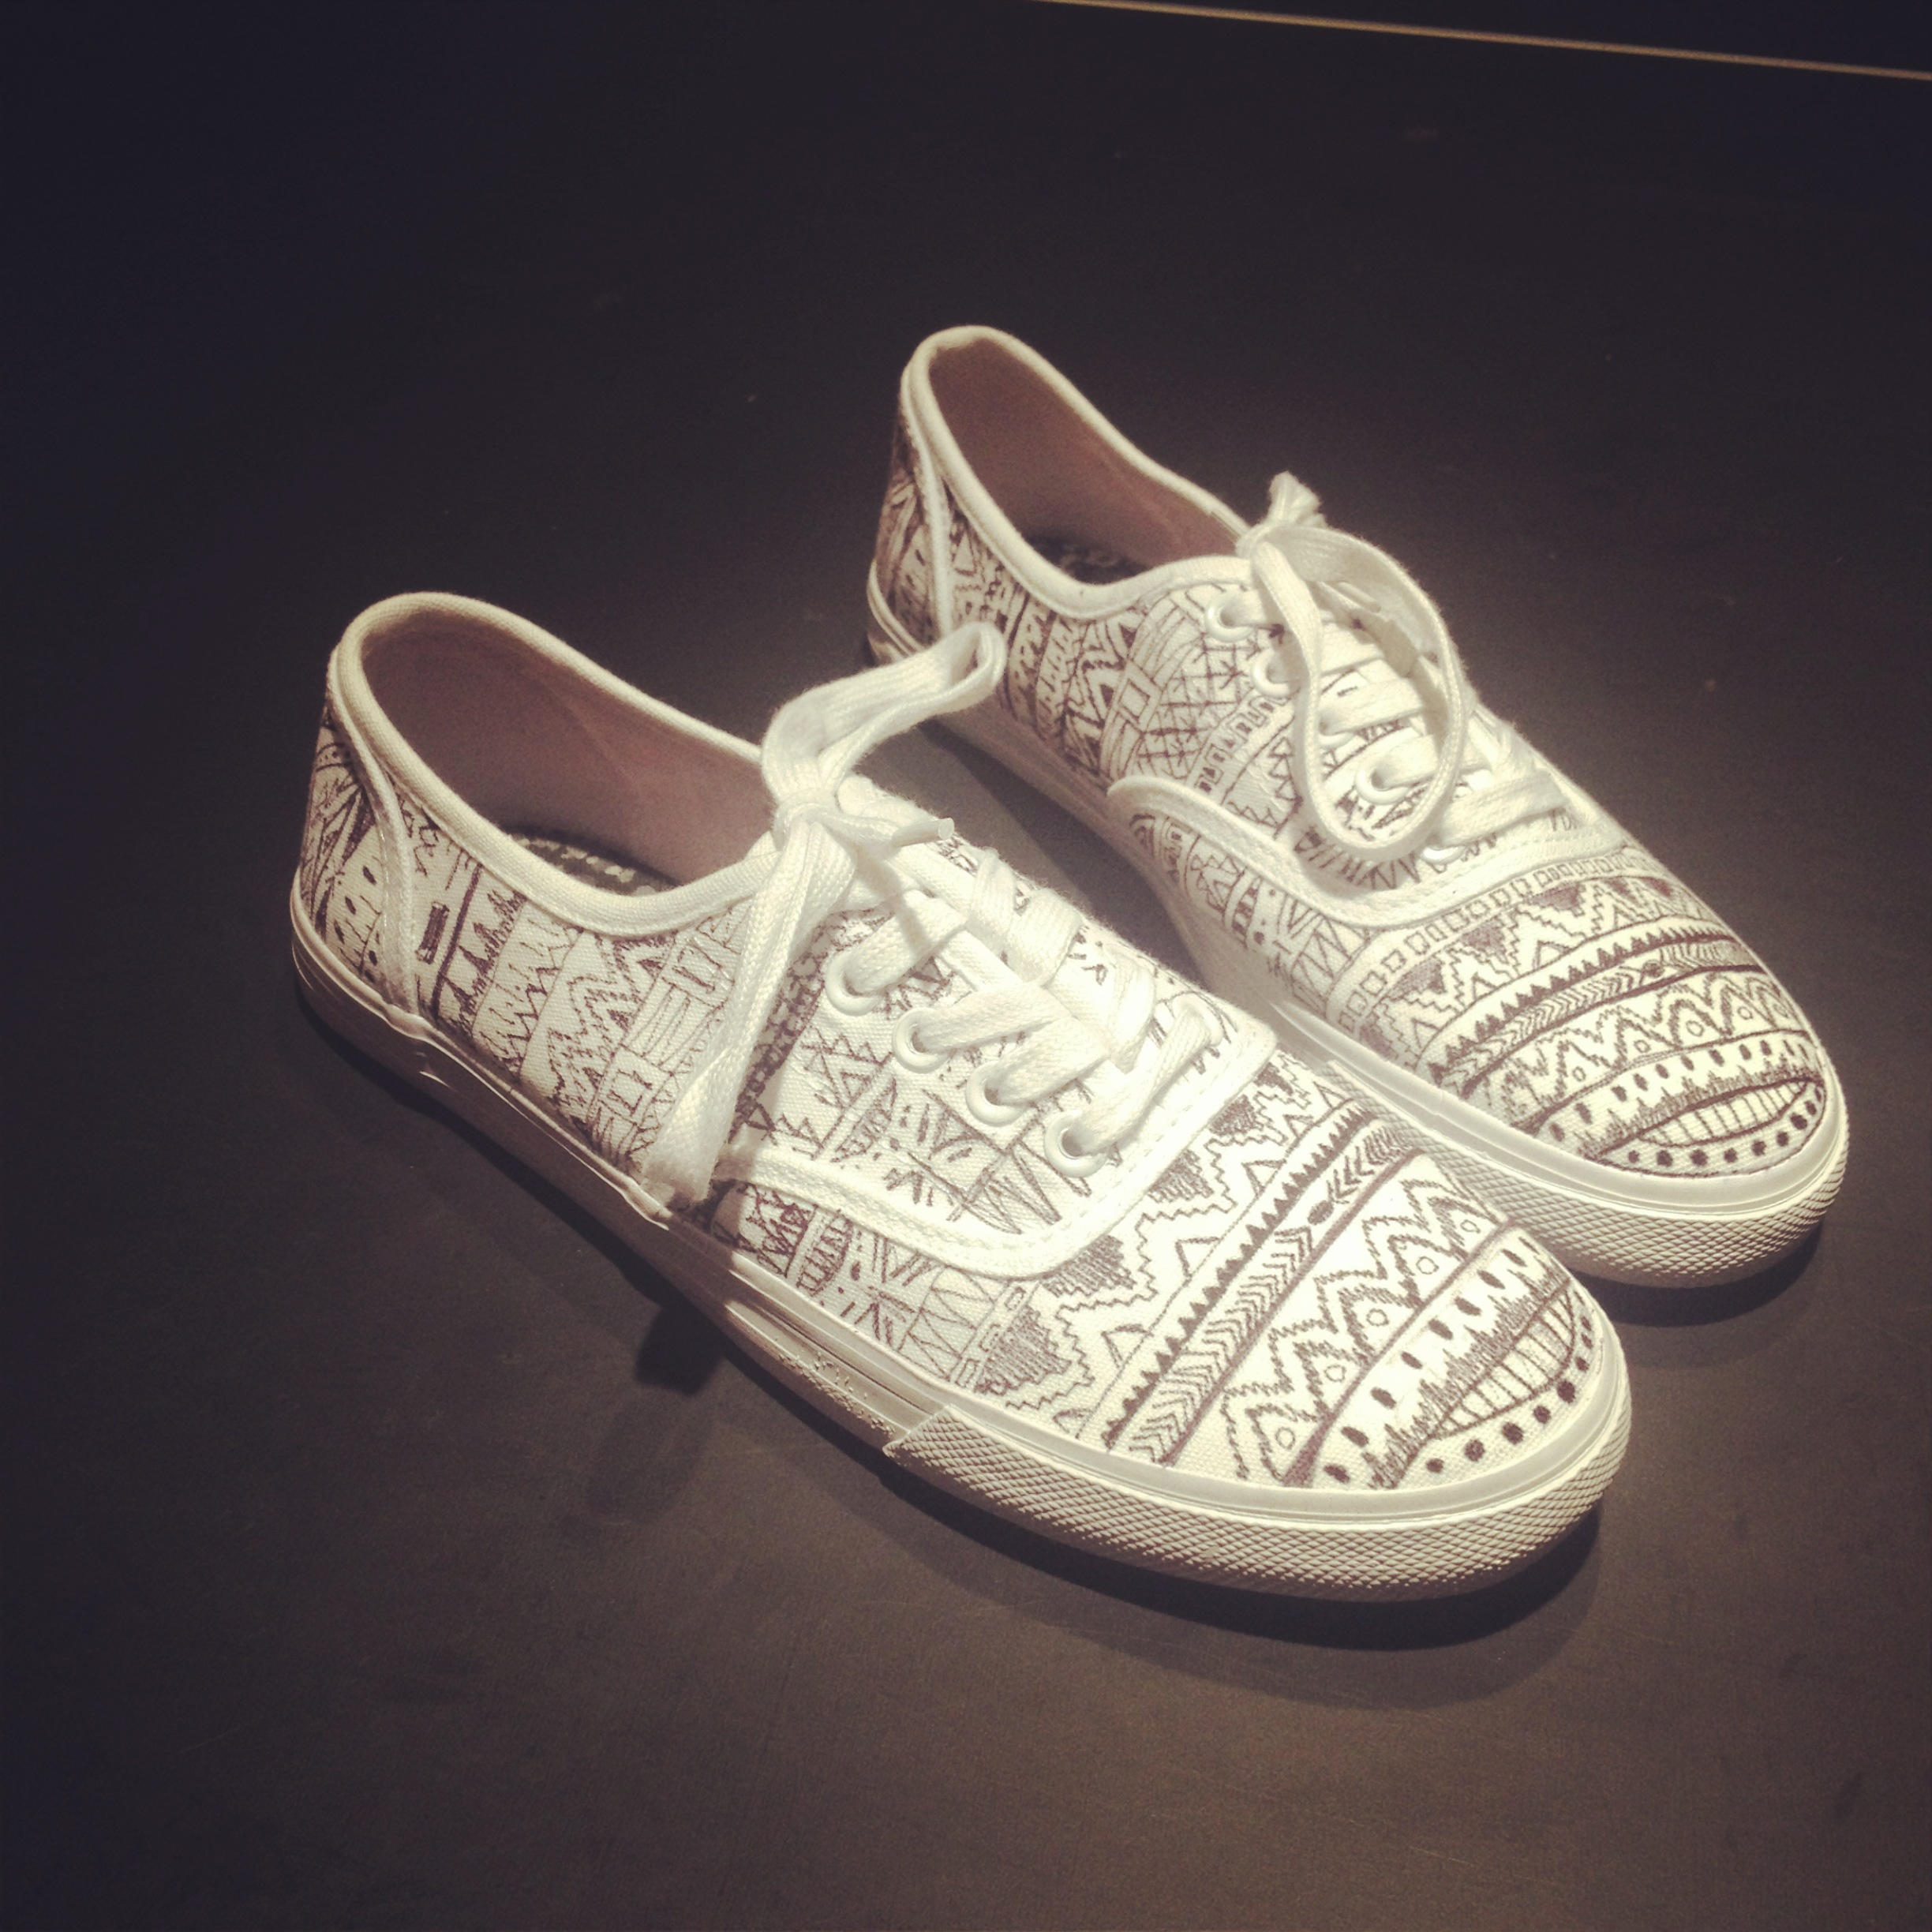 Drawn vans tribal pattern  my my all have